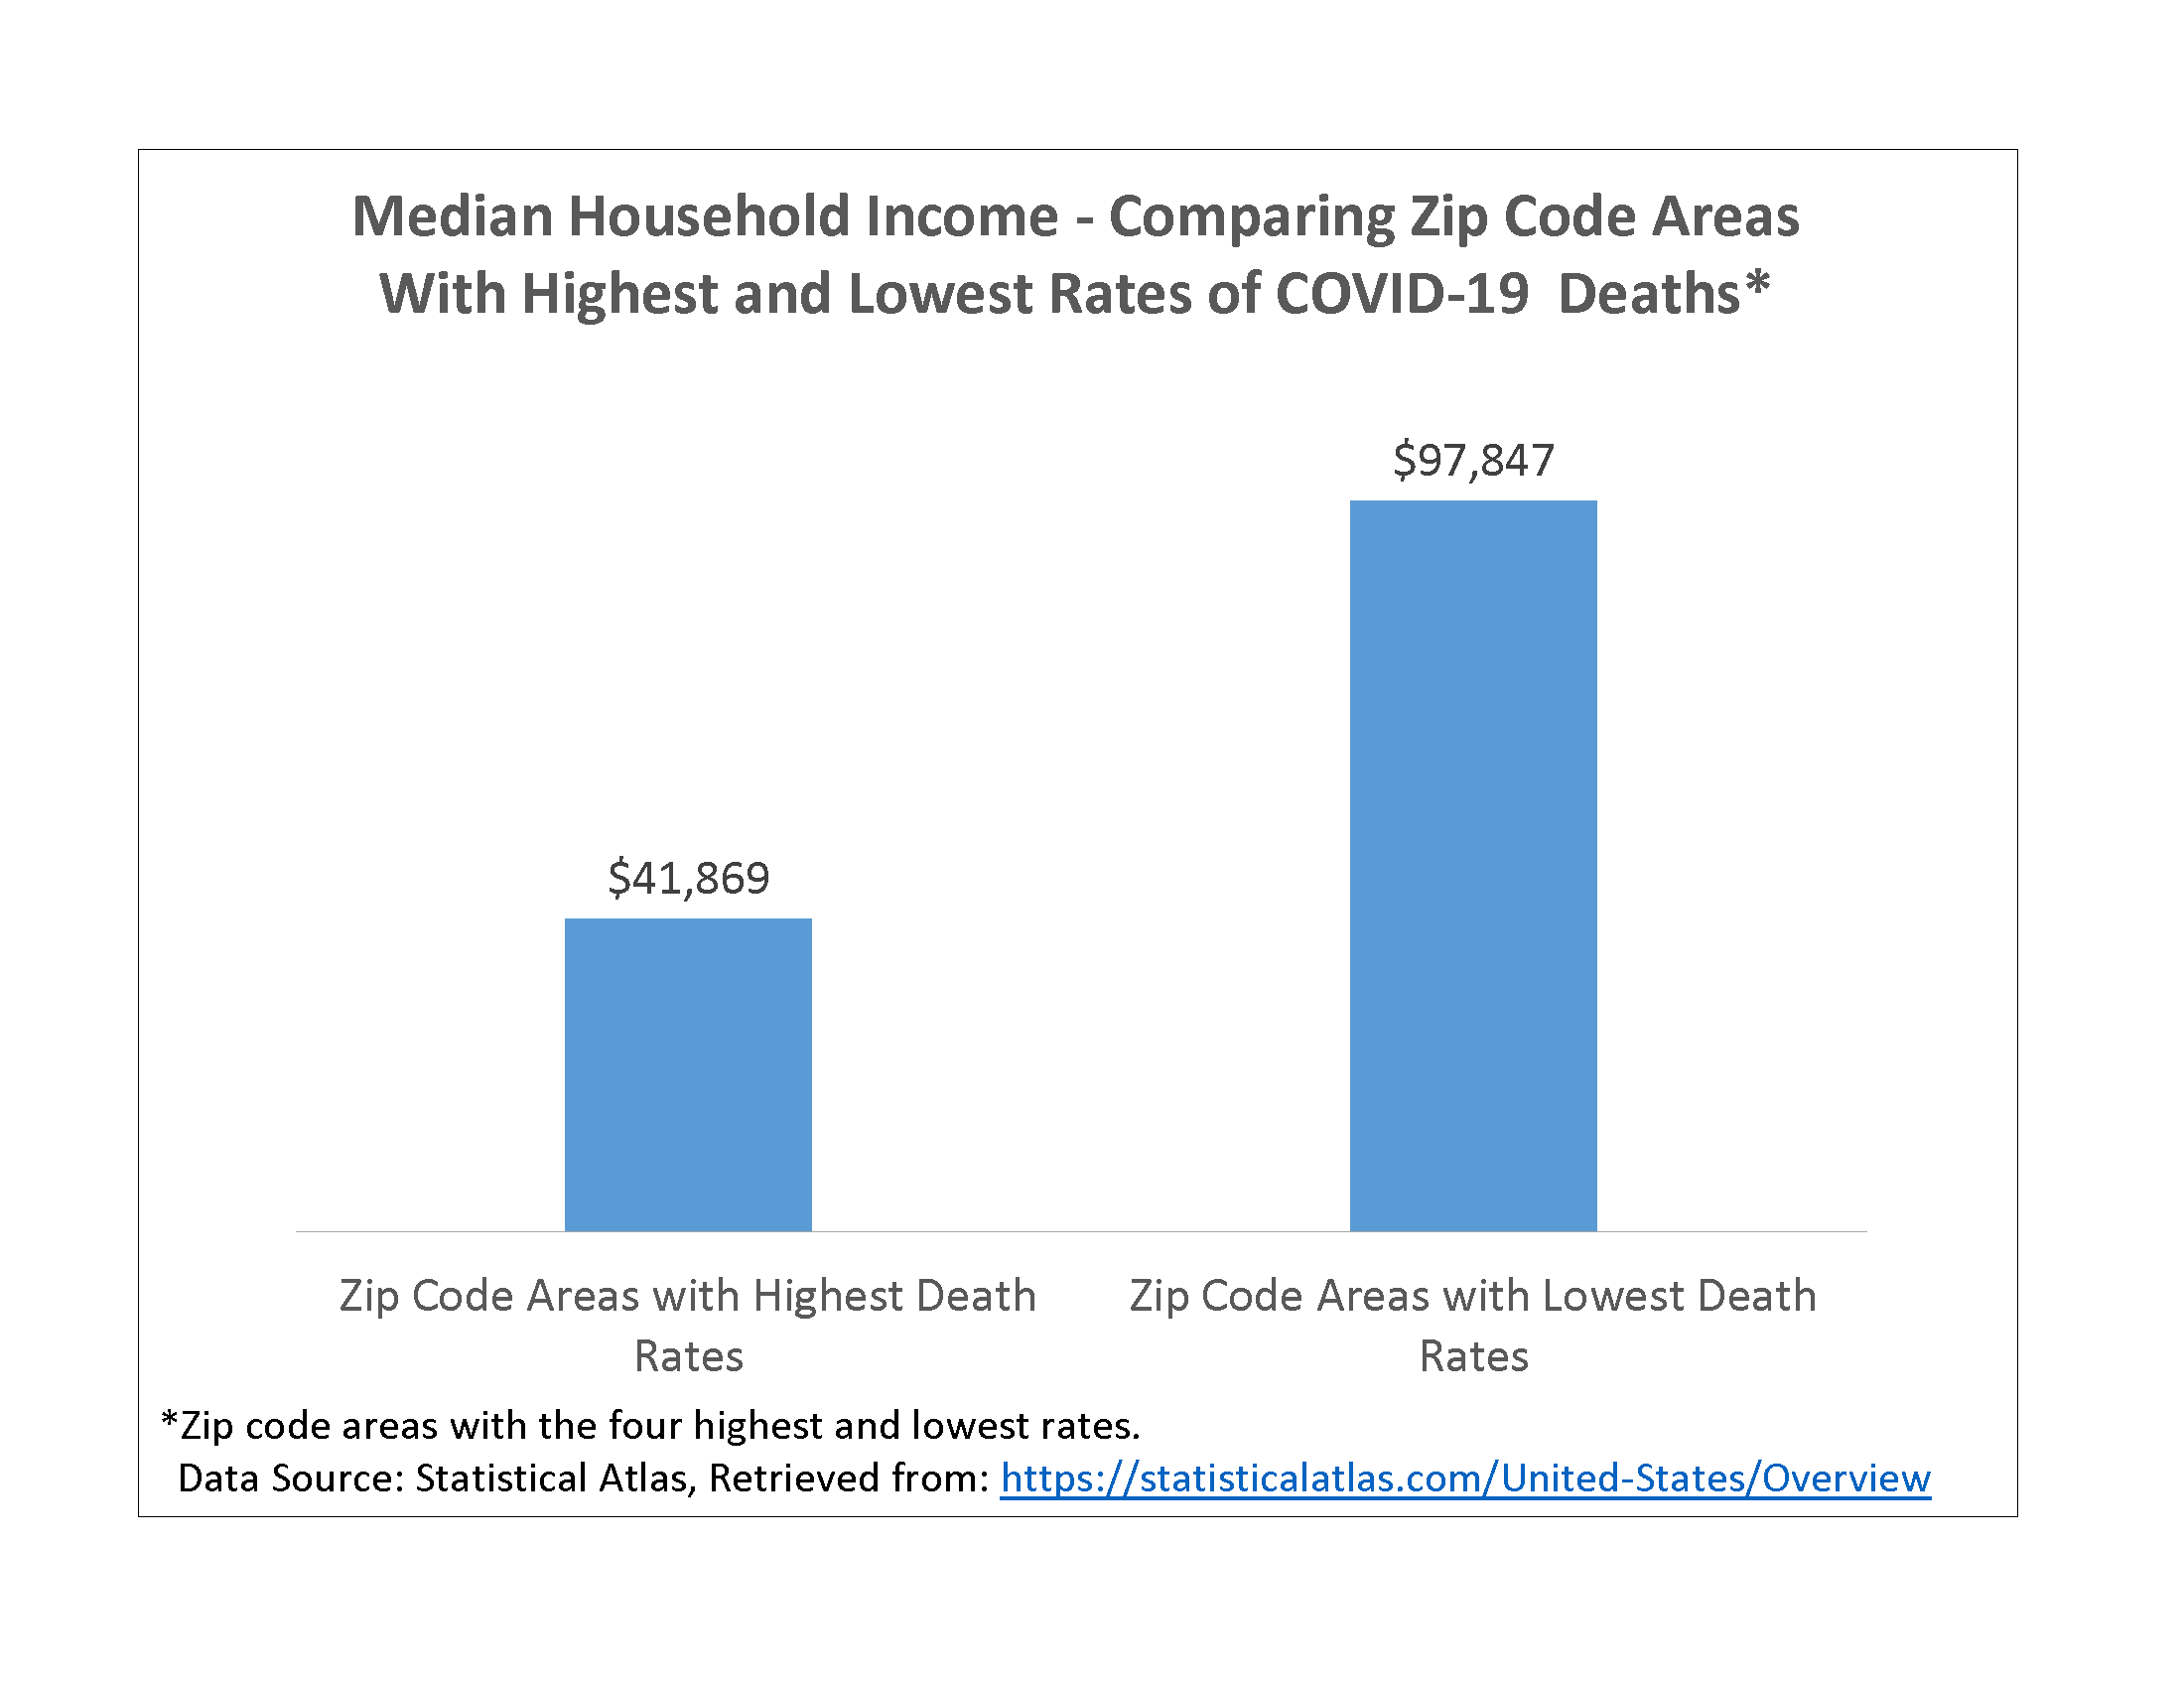 Graphic 6 - Median Household Income - Comparing ZC Areas with Highest and Lowest Rates of COVID-19 D